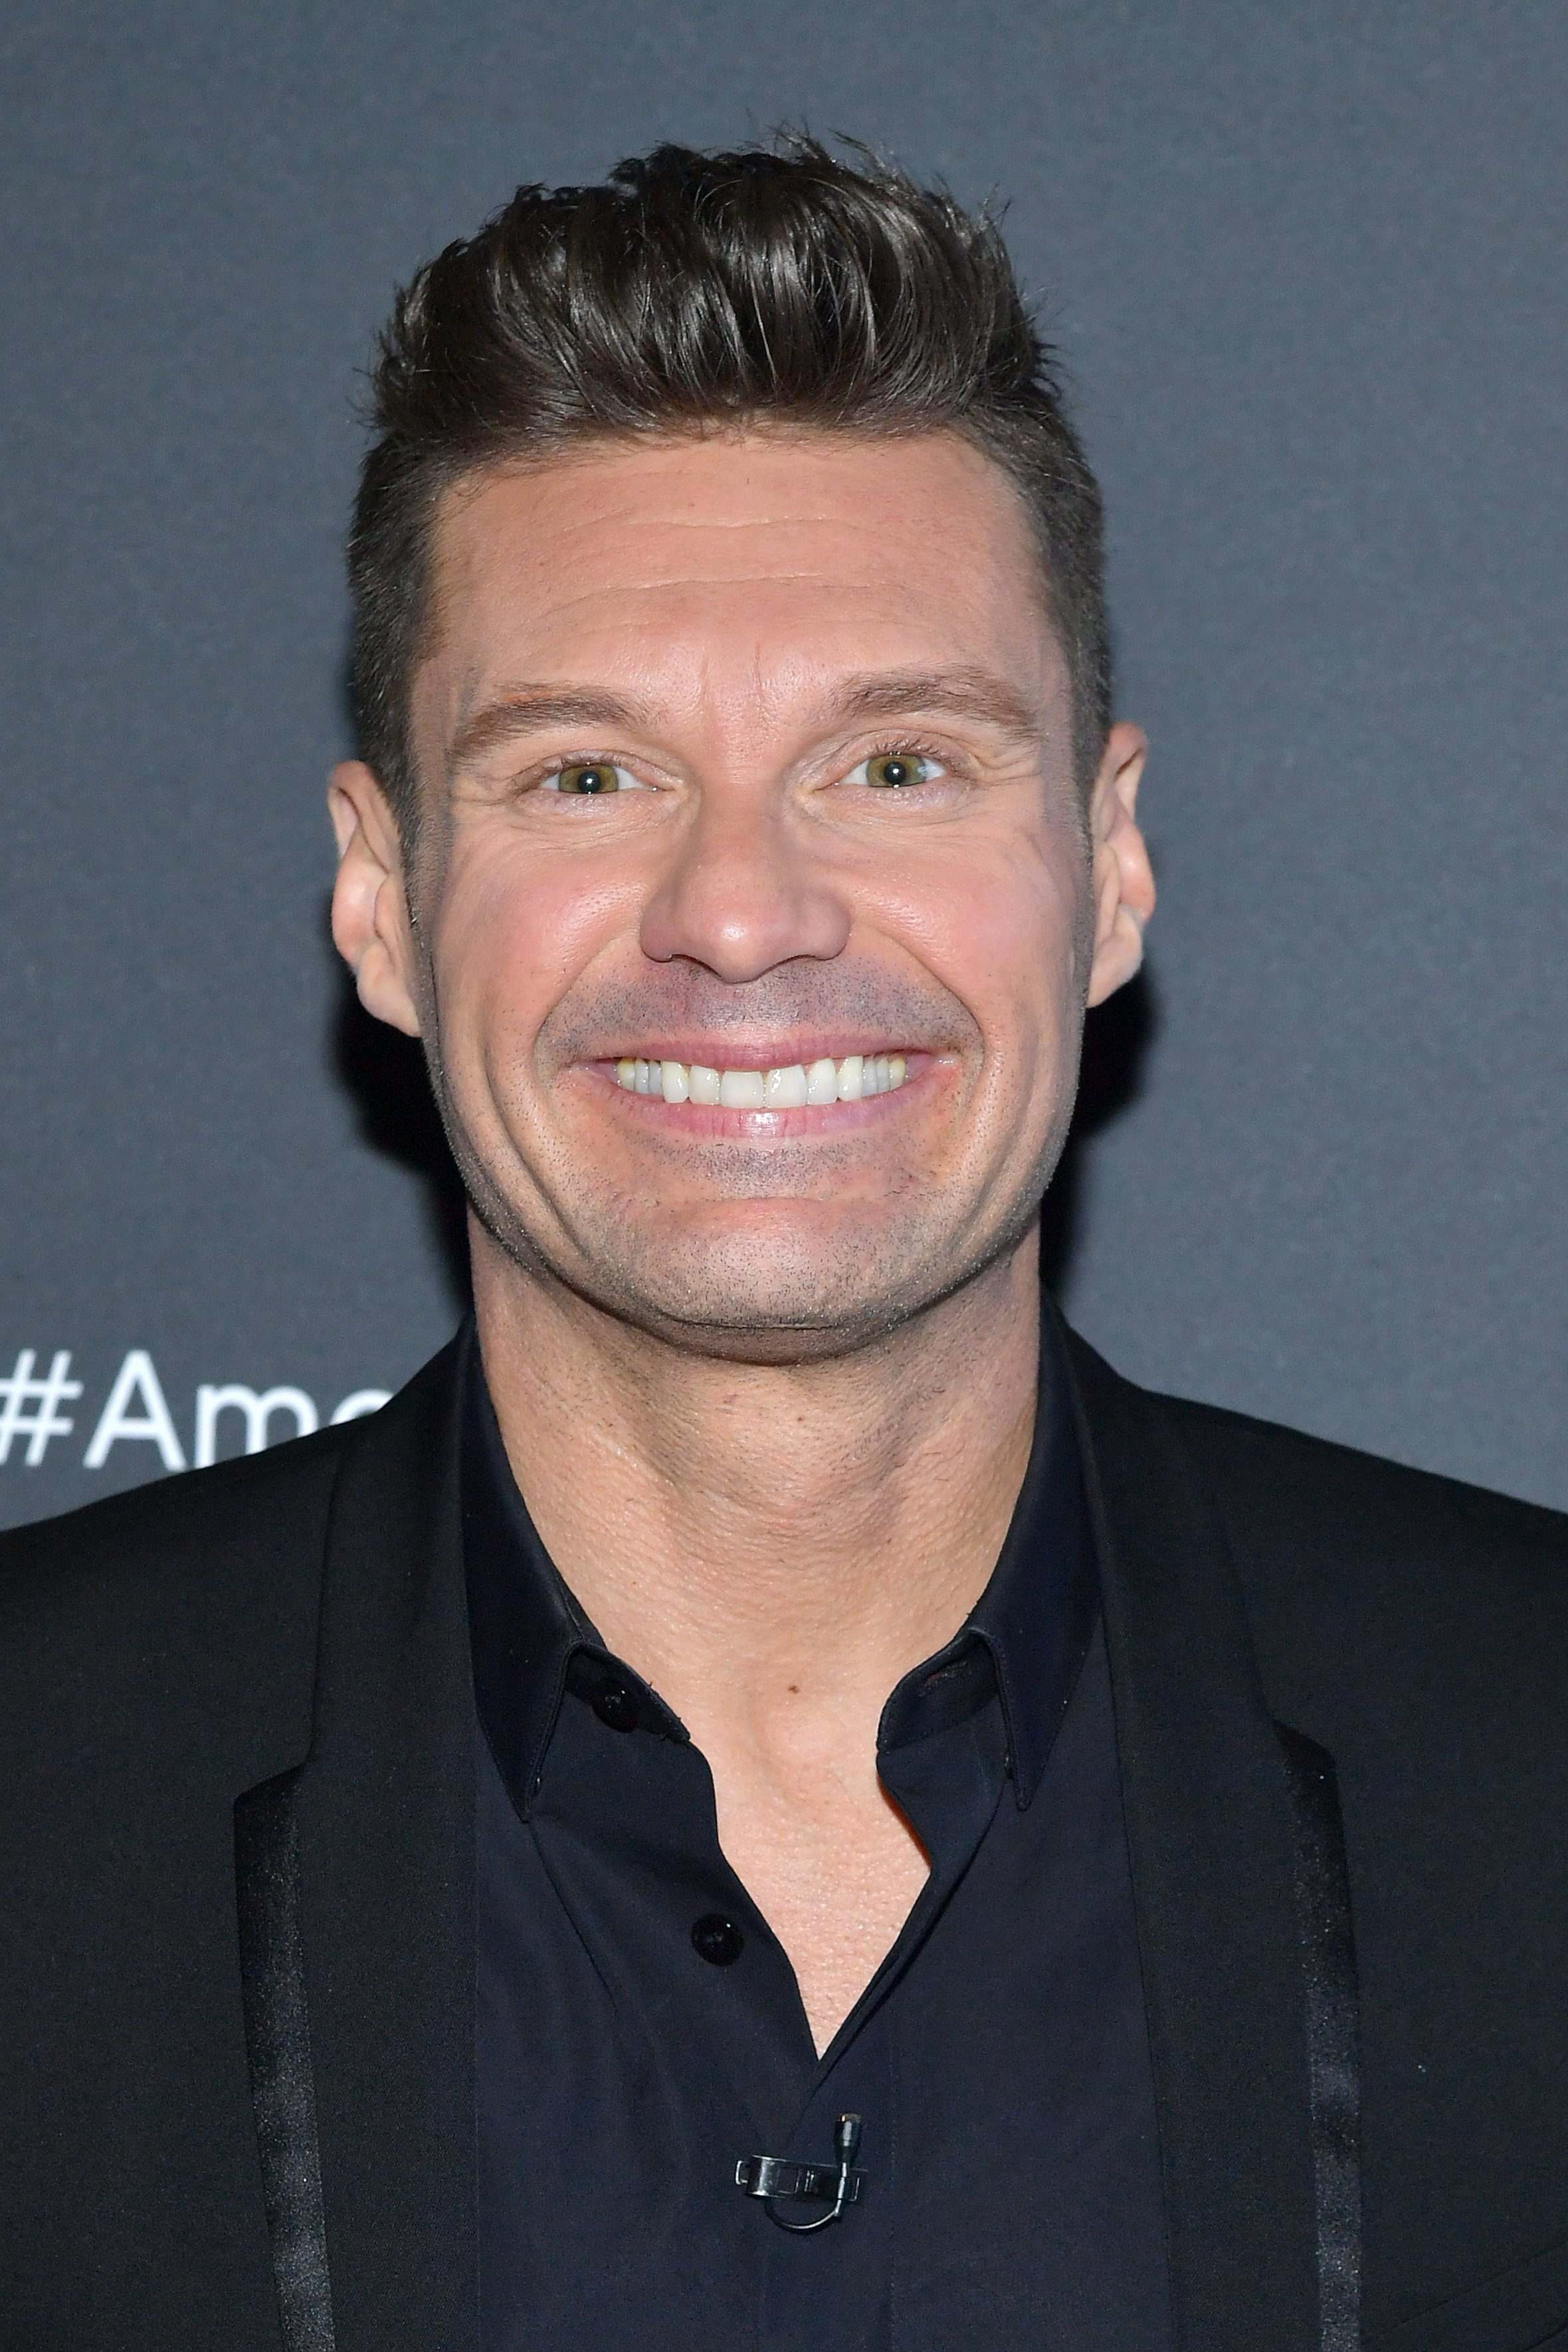 Ryan Seacrest at ABC's American Idol live show on May 12, 2019 in Los Angeles, California | Photo: Getty Images